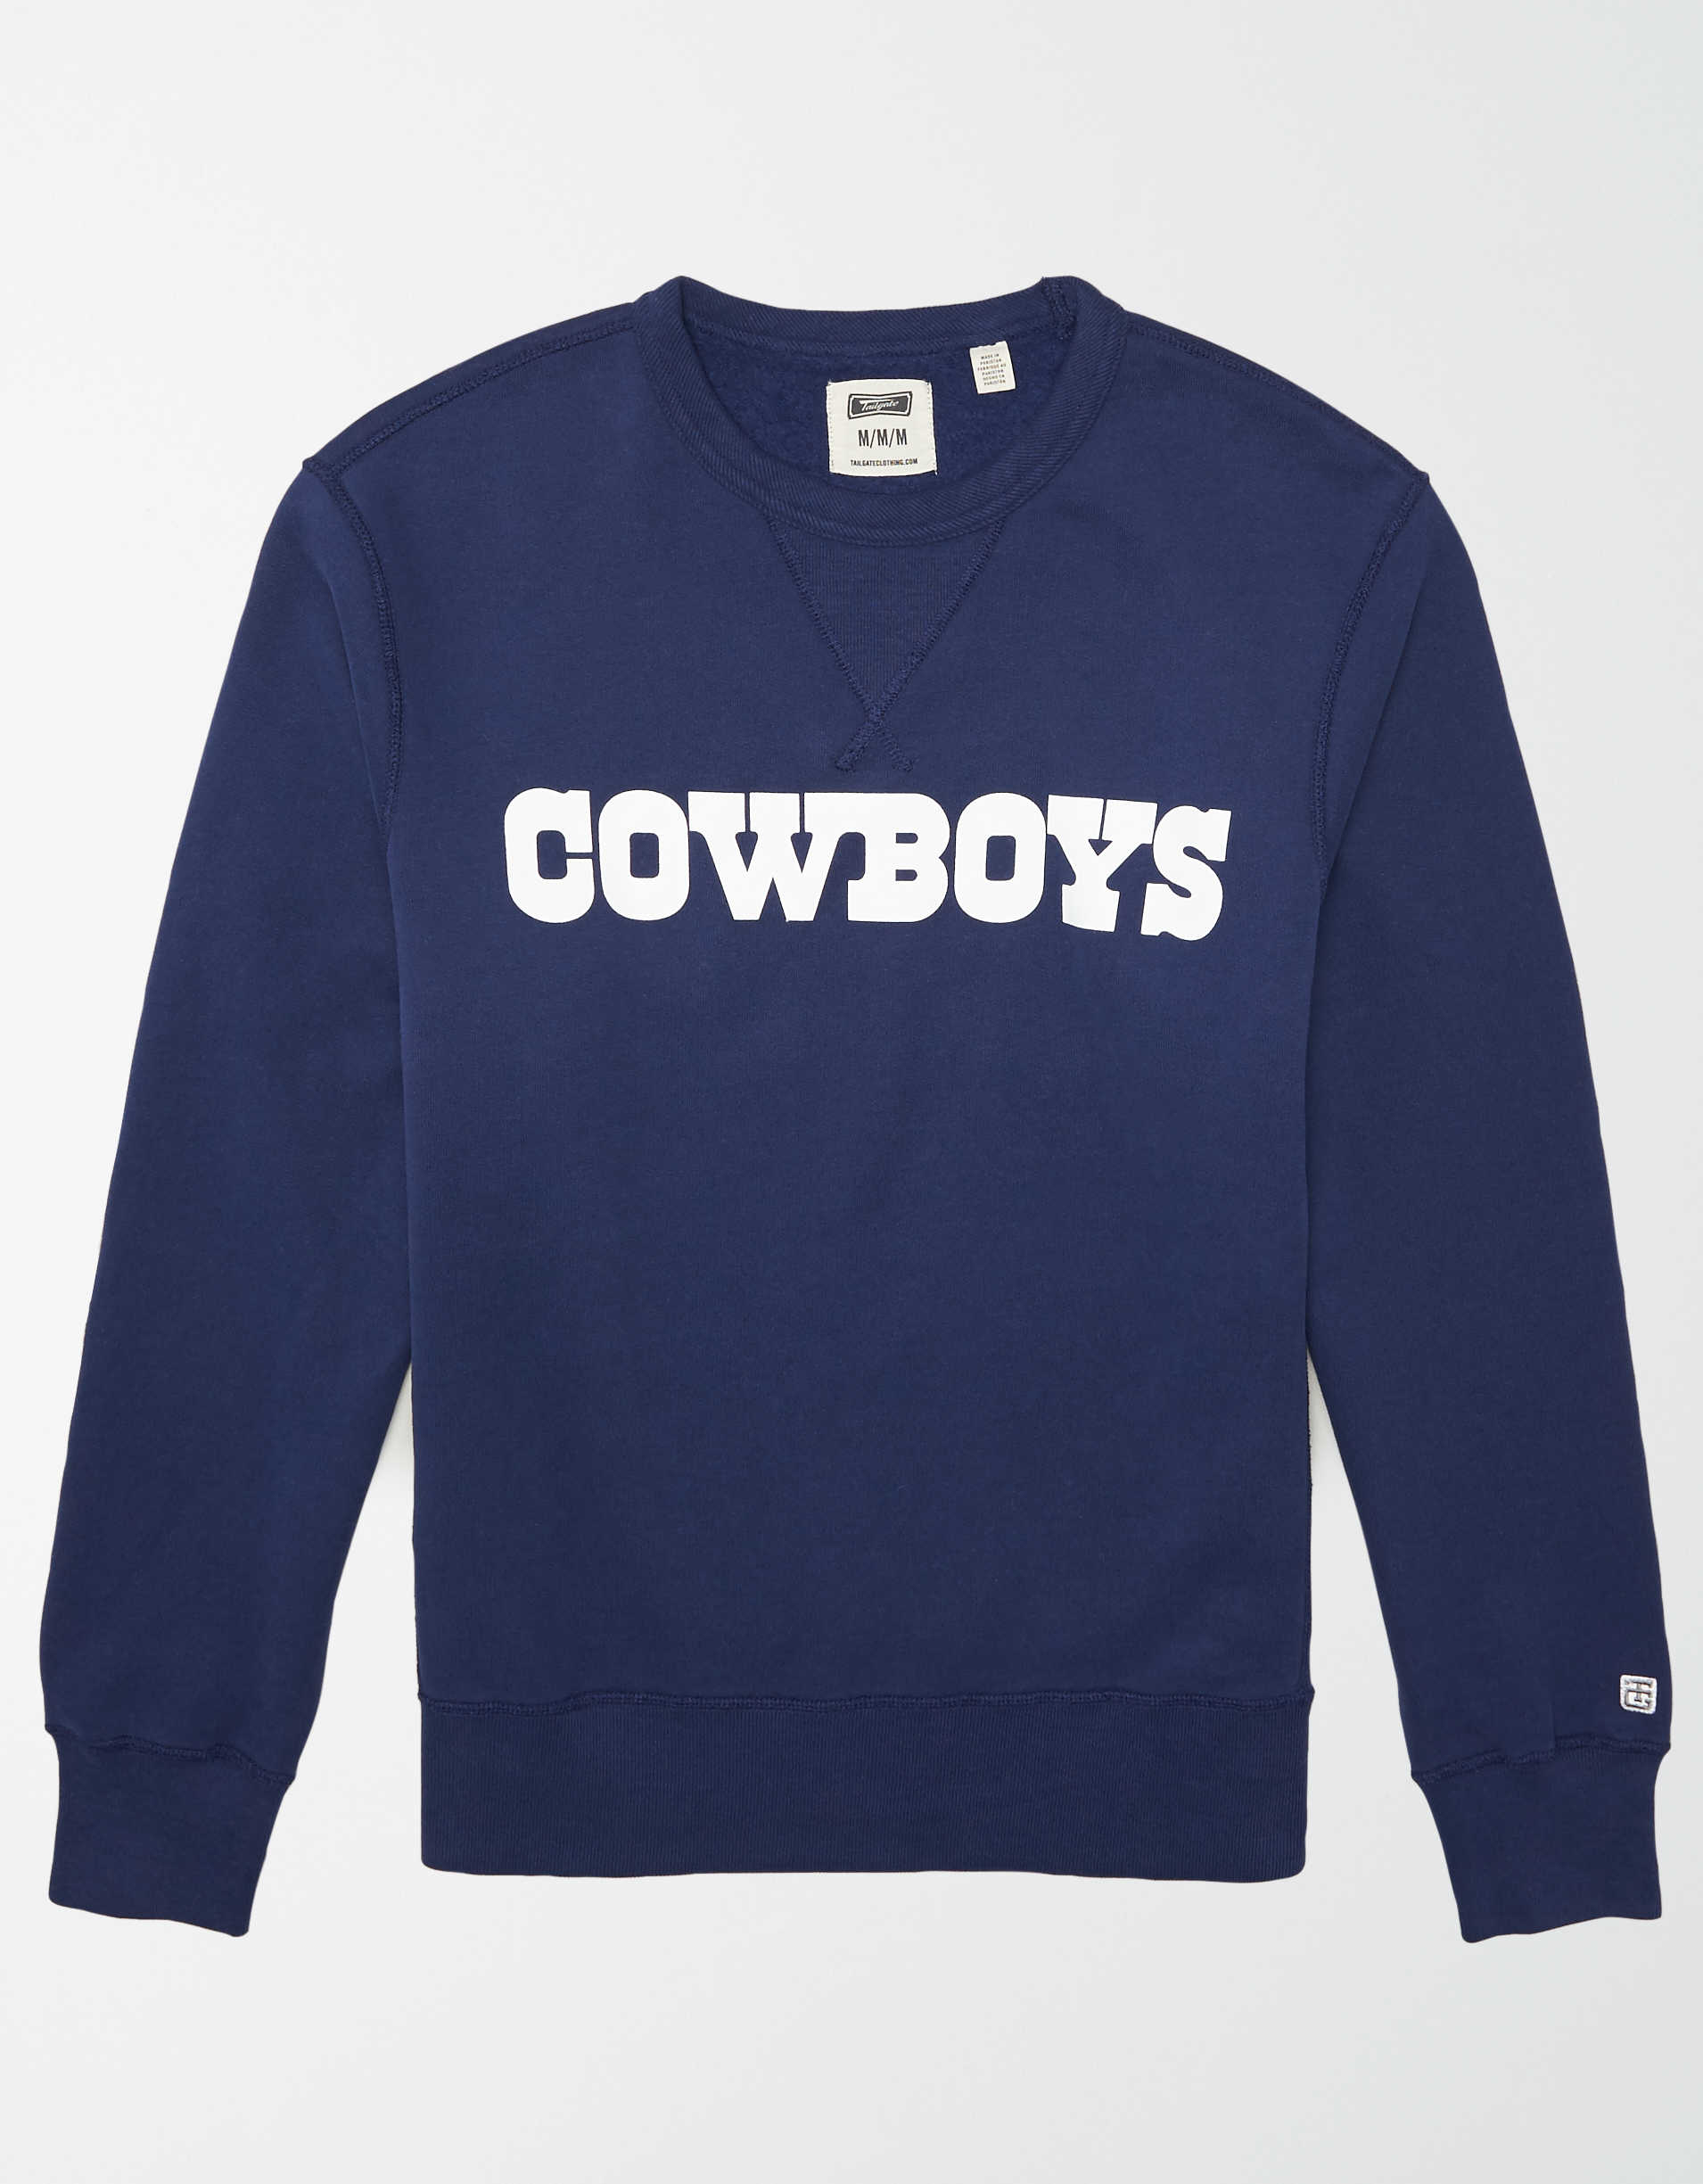 Tailgate Men's Dallas Cowboys Sweatshirt